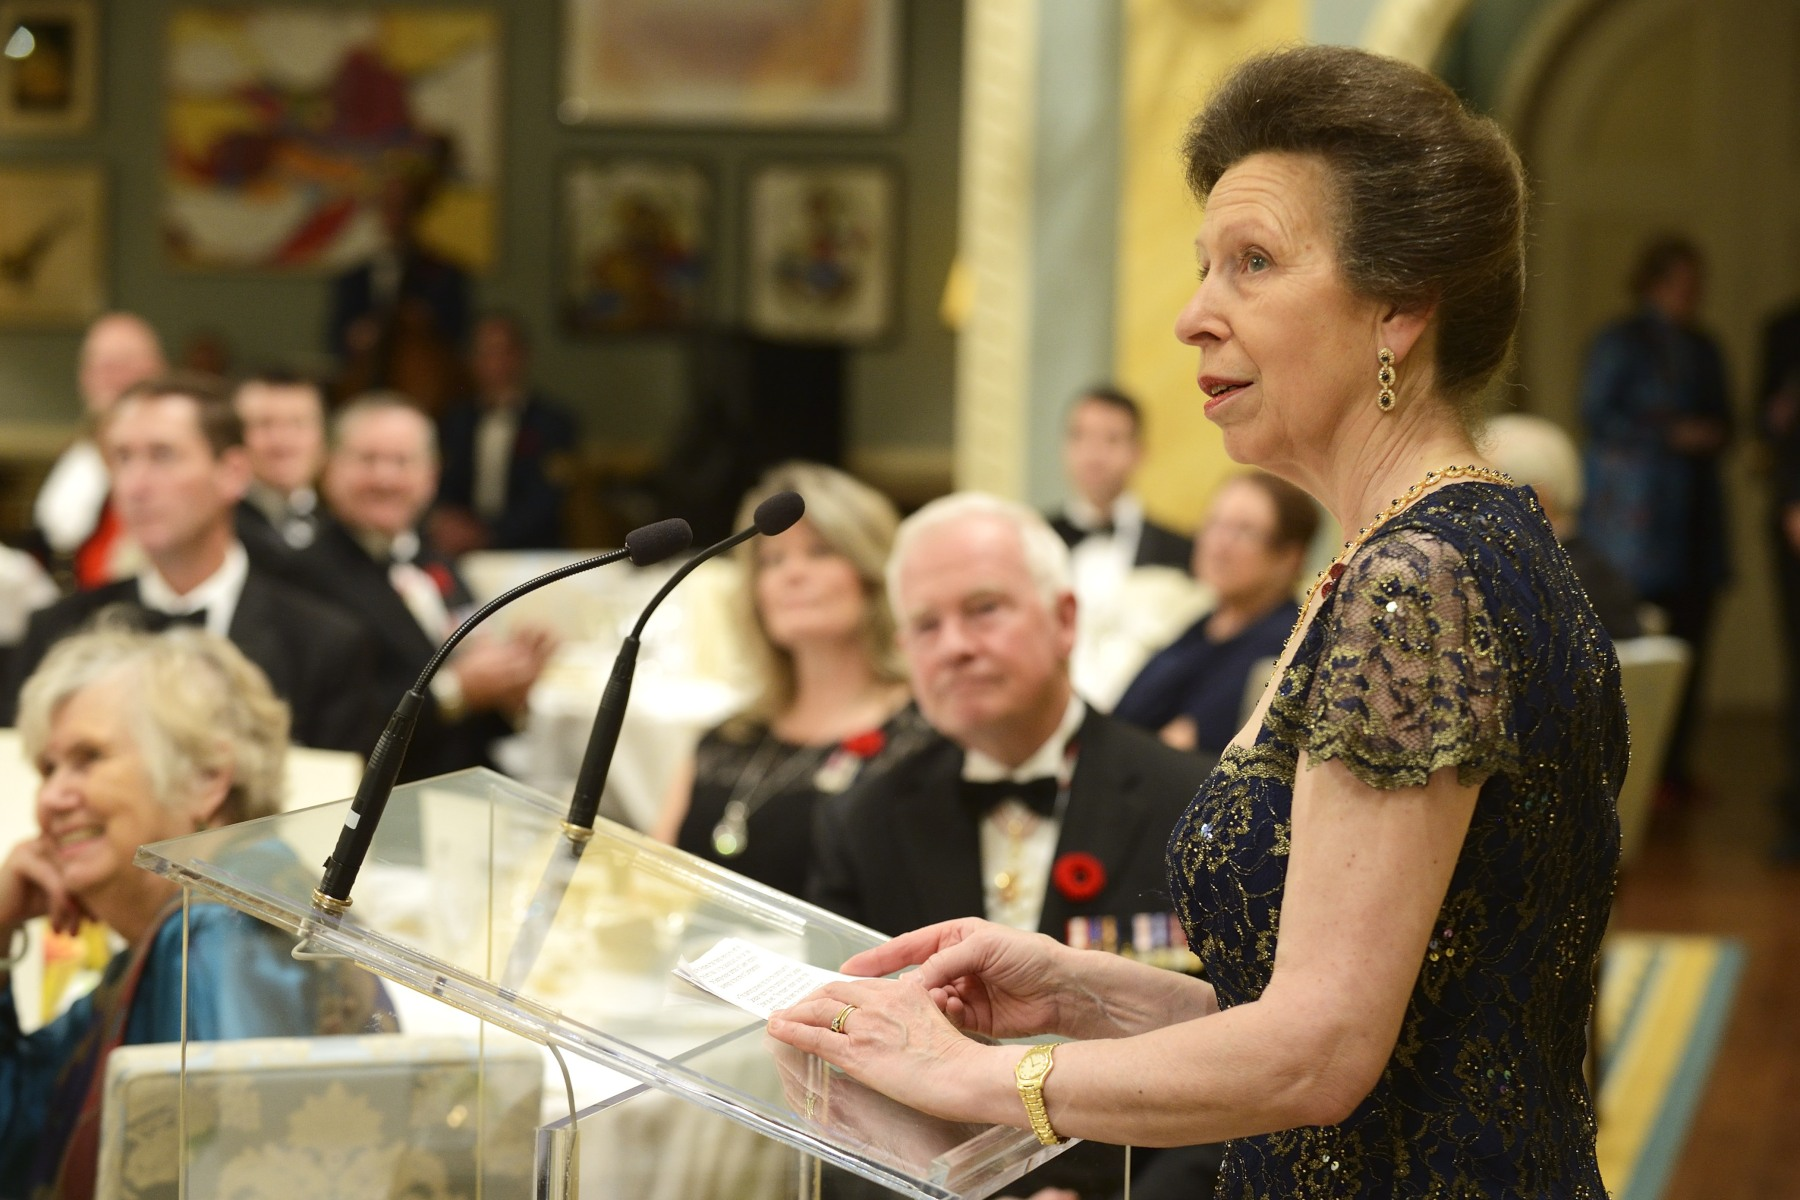 Her Royal Highness The Princess Royal also delivered remarks and offered a toast.